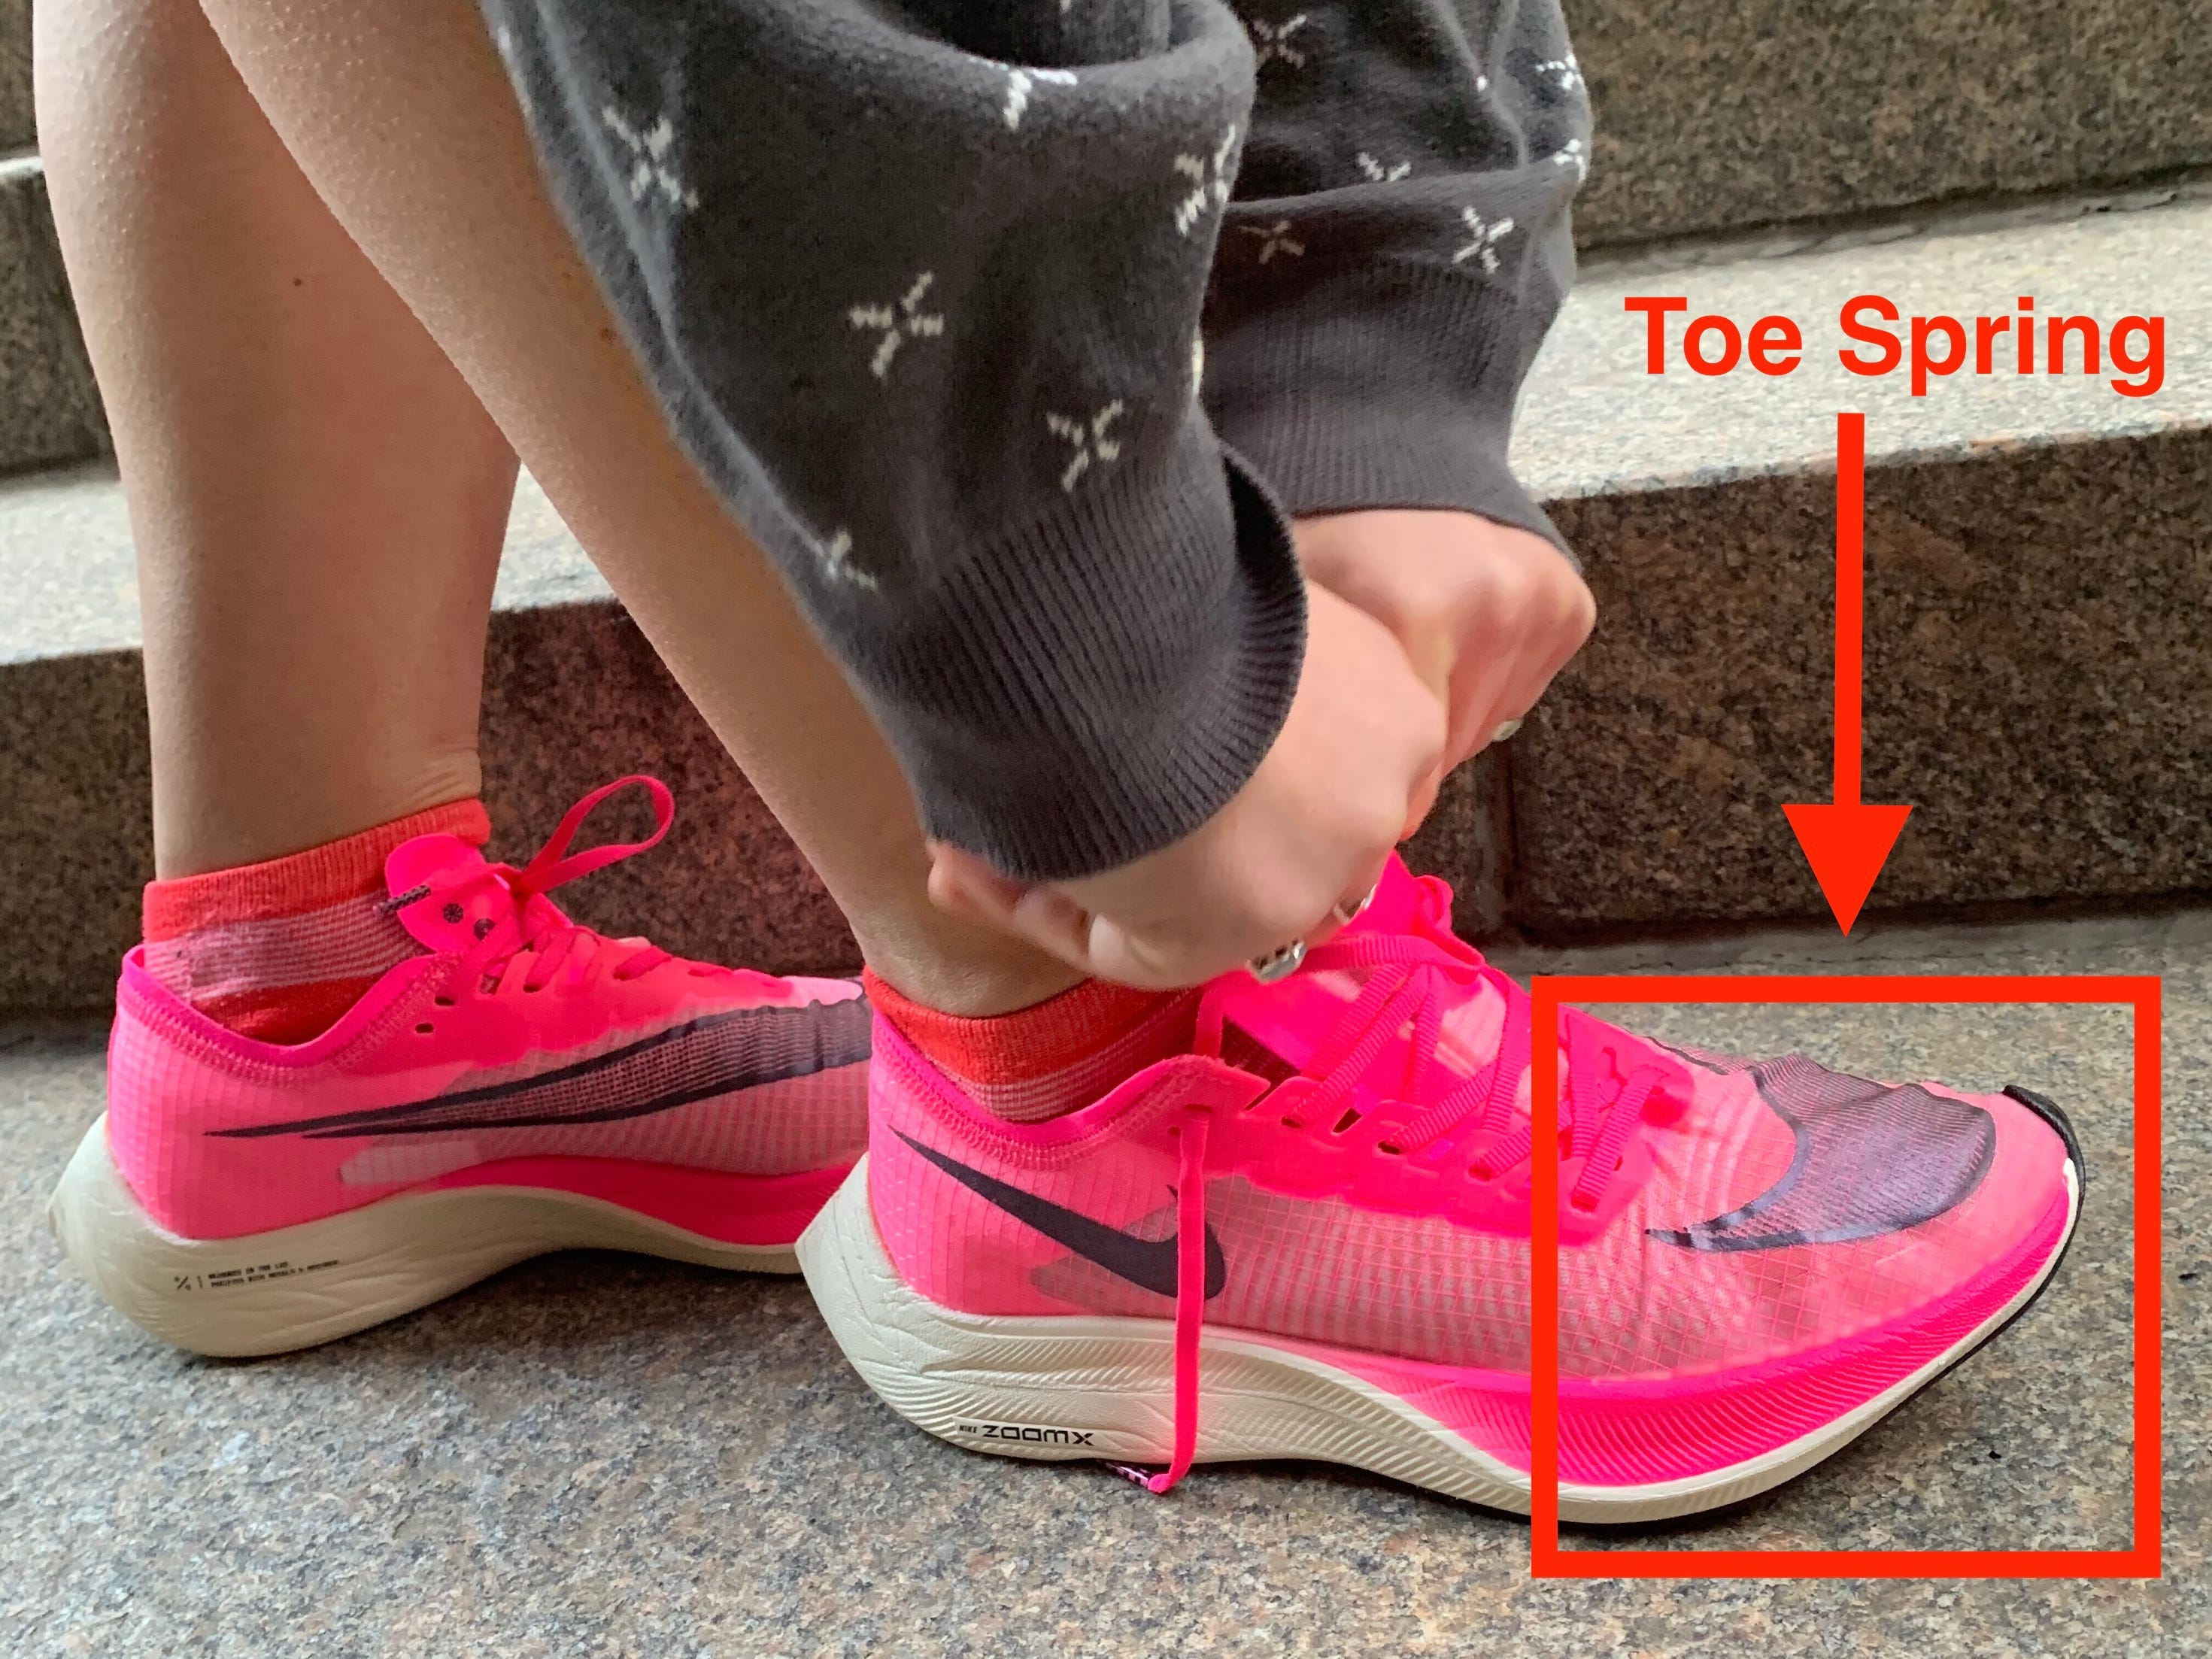 Upward curve at front of modern-day sneakers is called the toe spring. (Aylin Woodward/Business Insider)